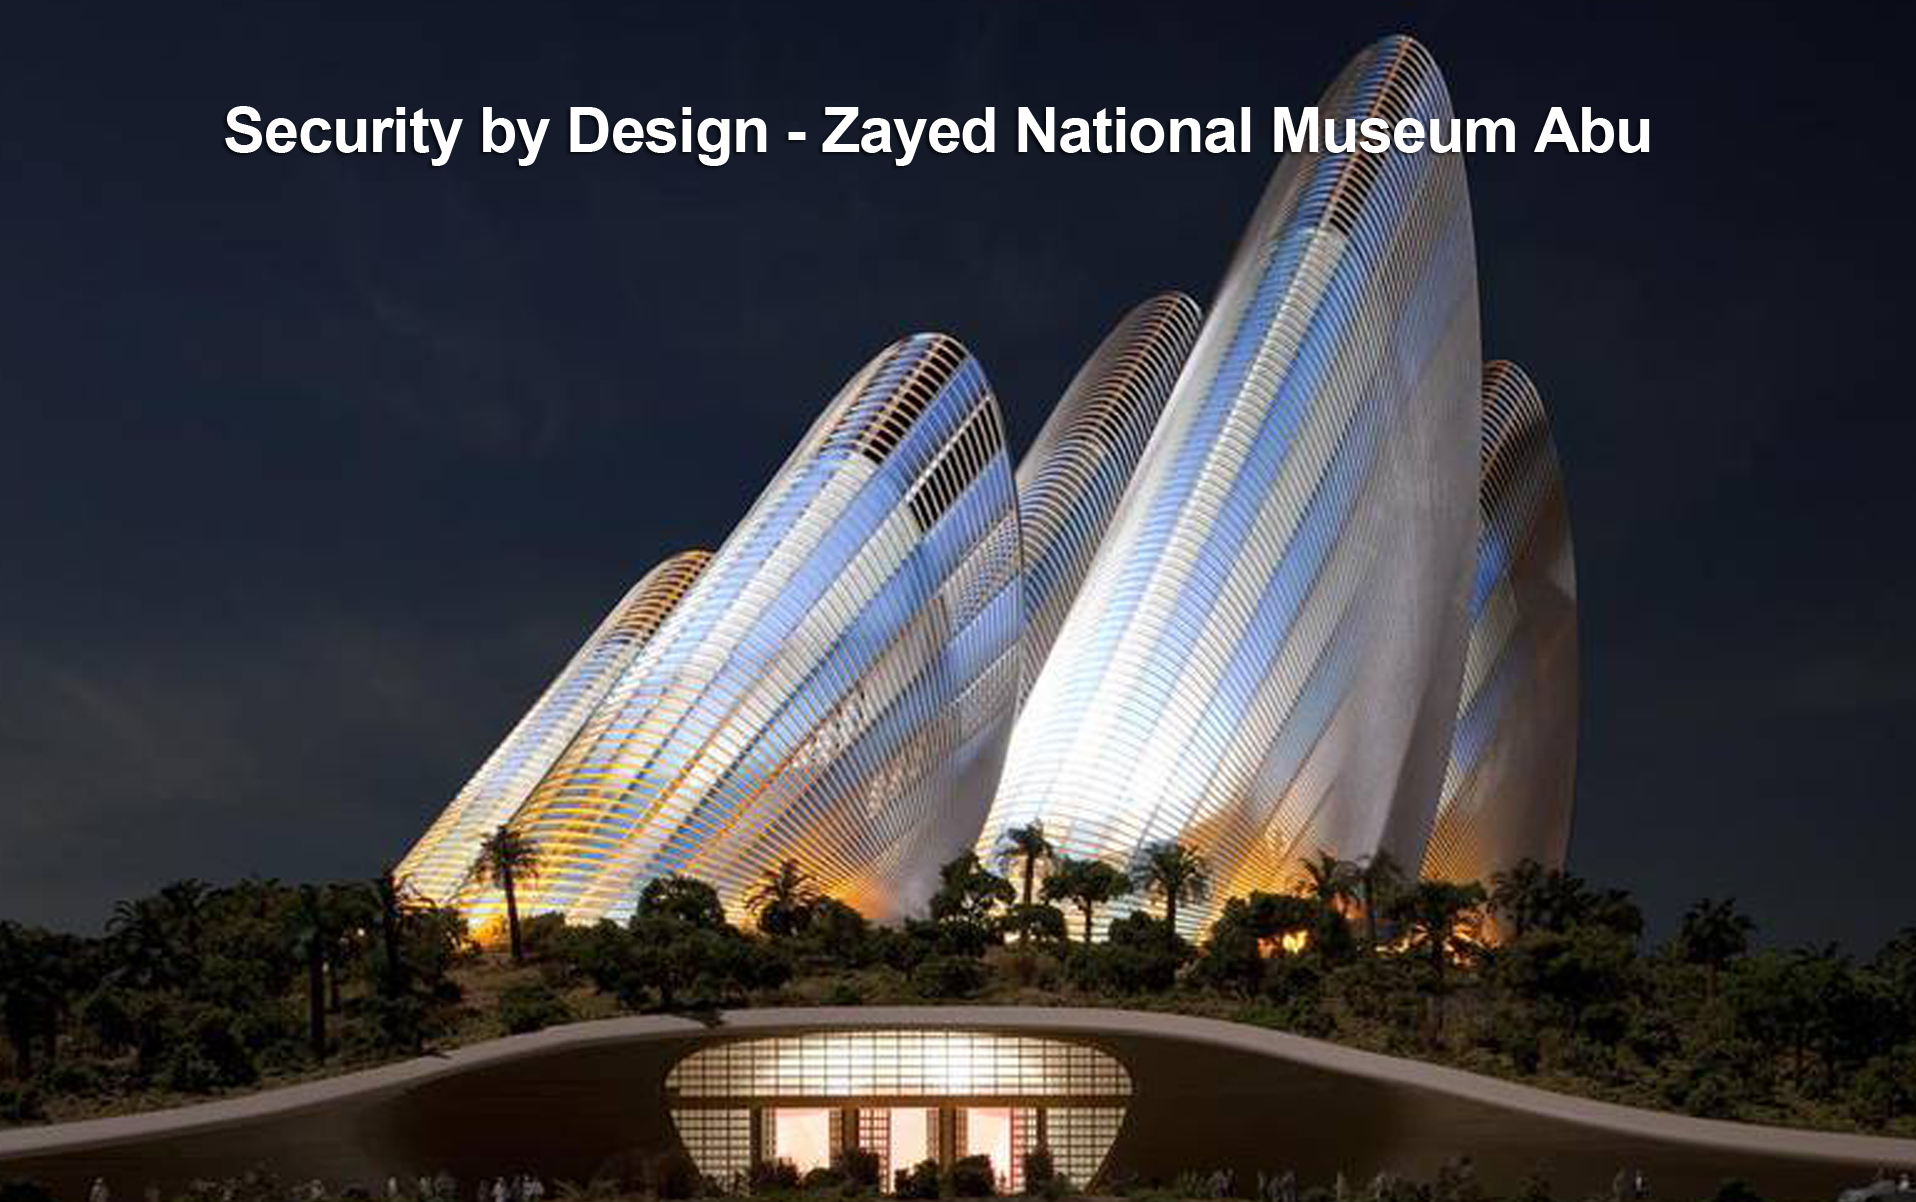 Security by Design - Zayed National Museum Abu